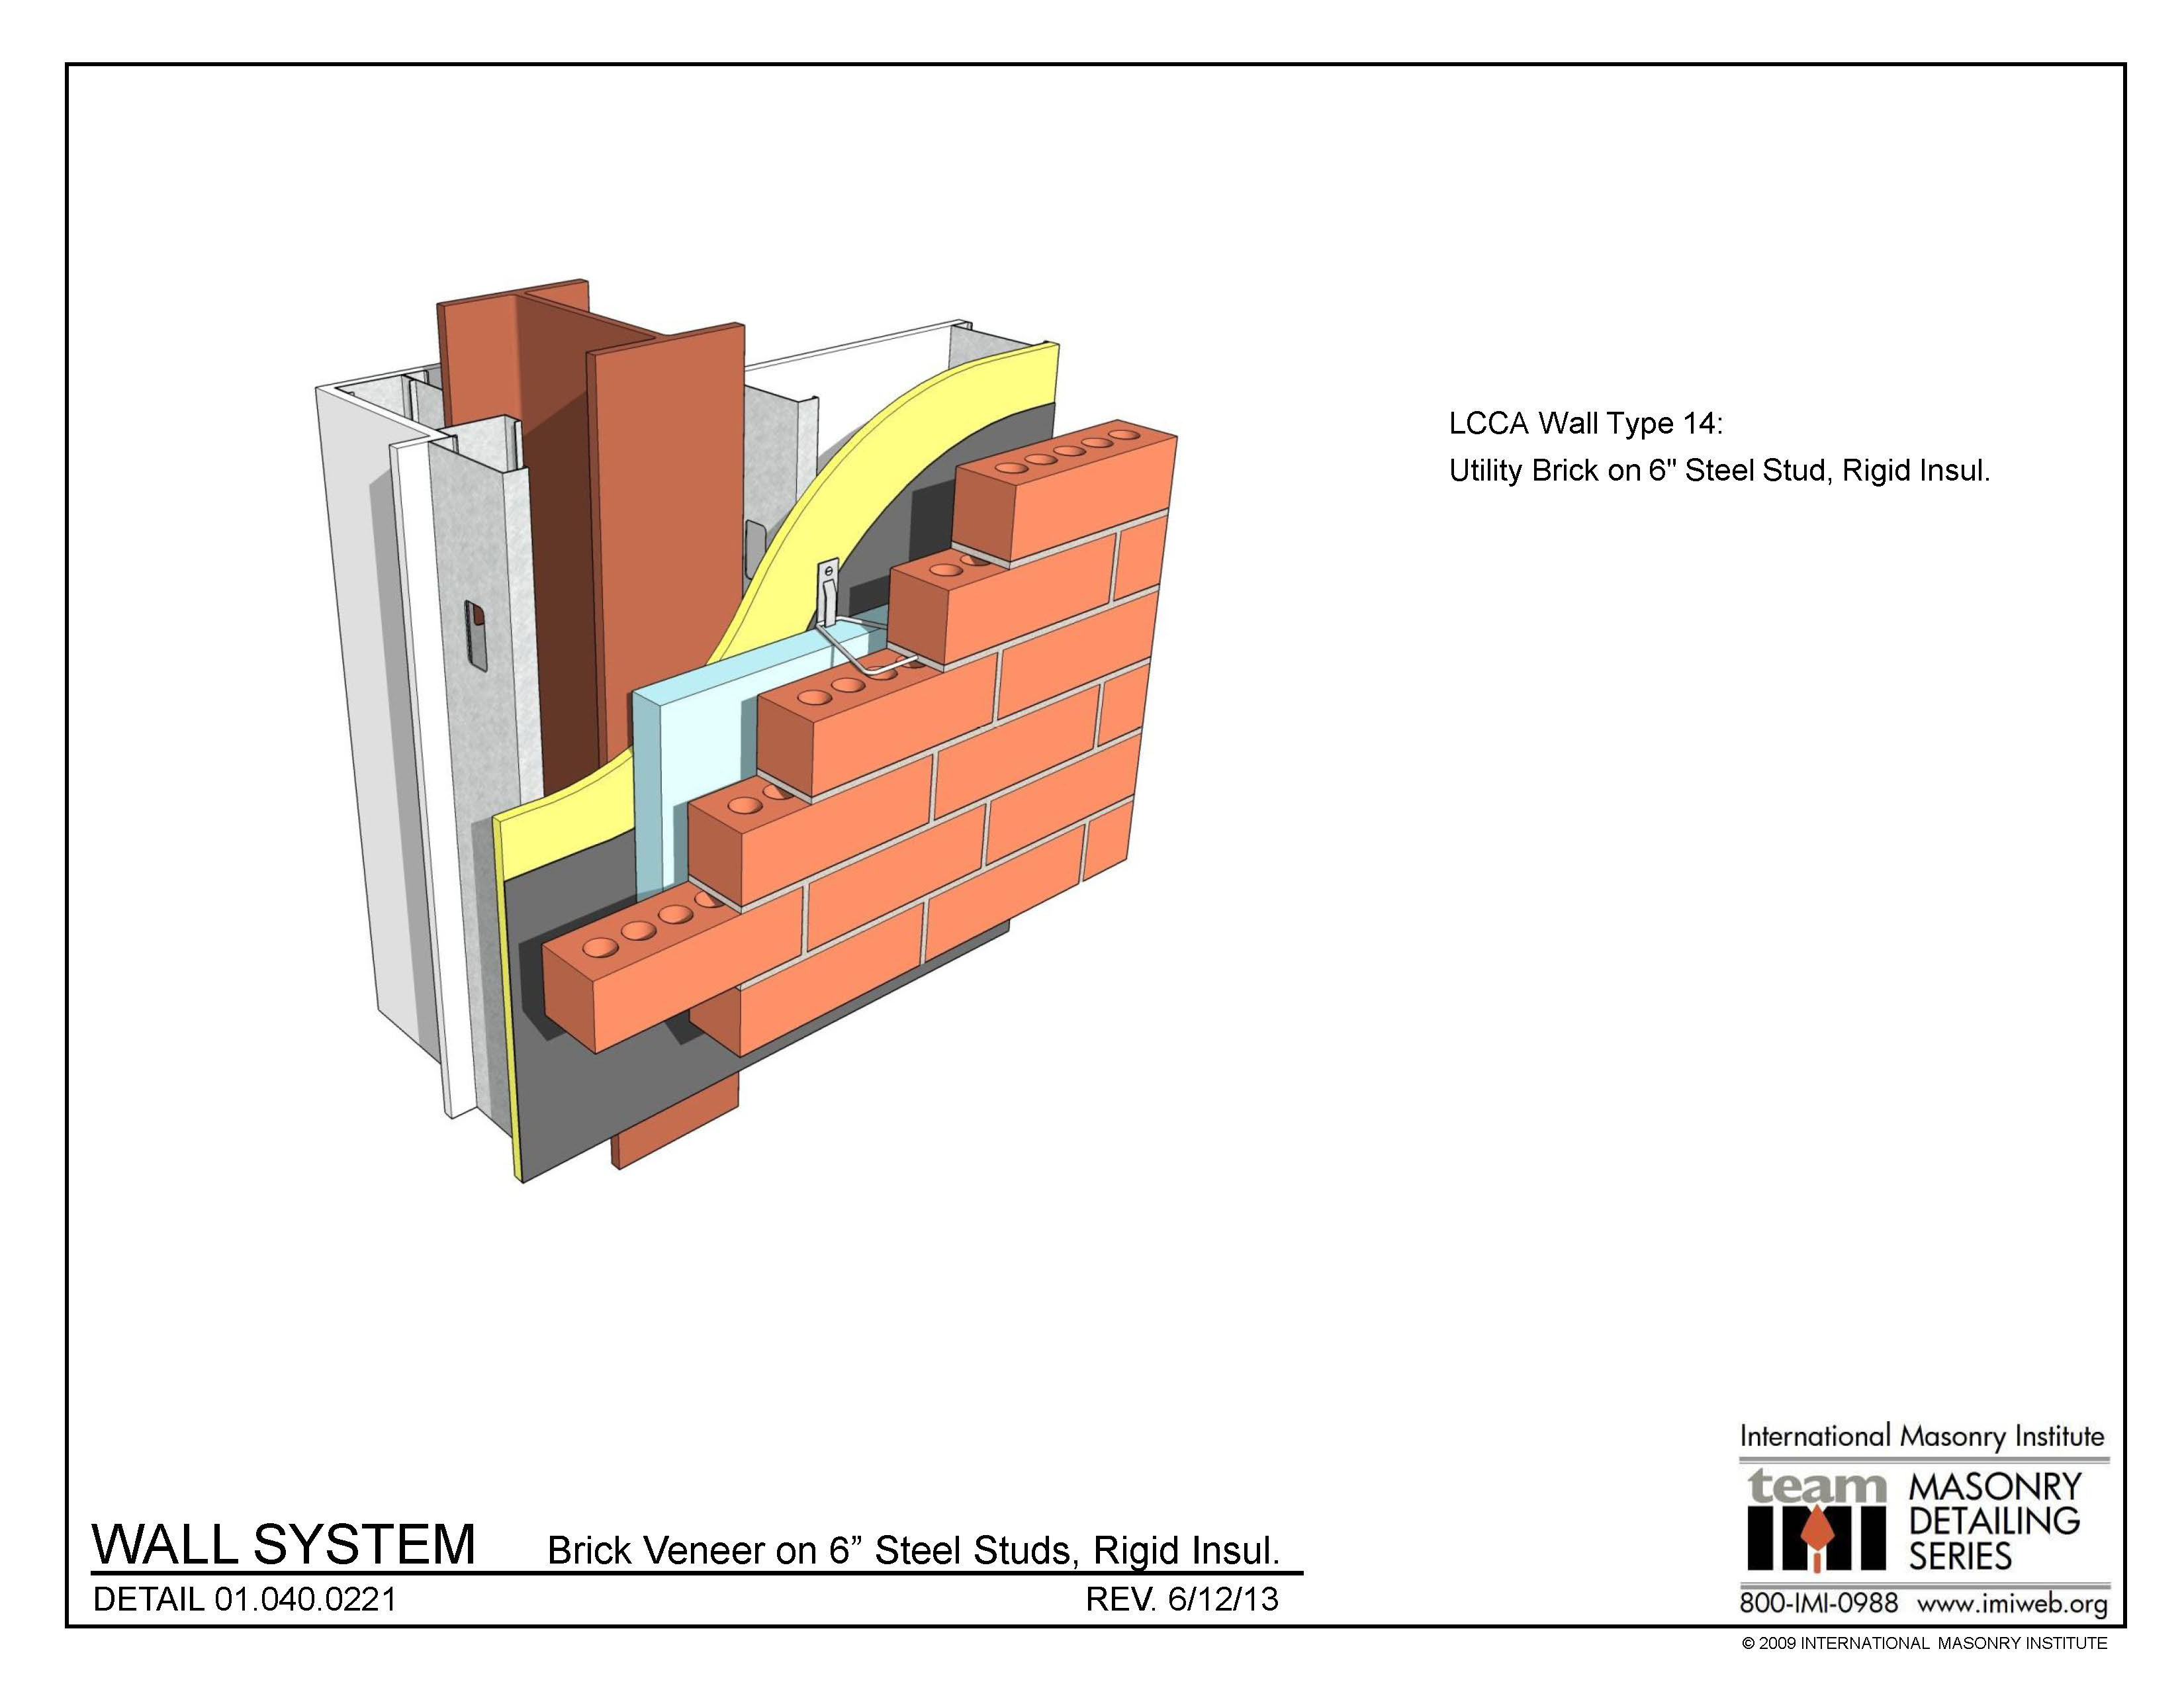 01 040 0221 Wall System Brick Veneer On 6 Steel Studs